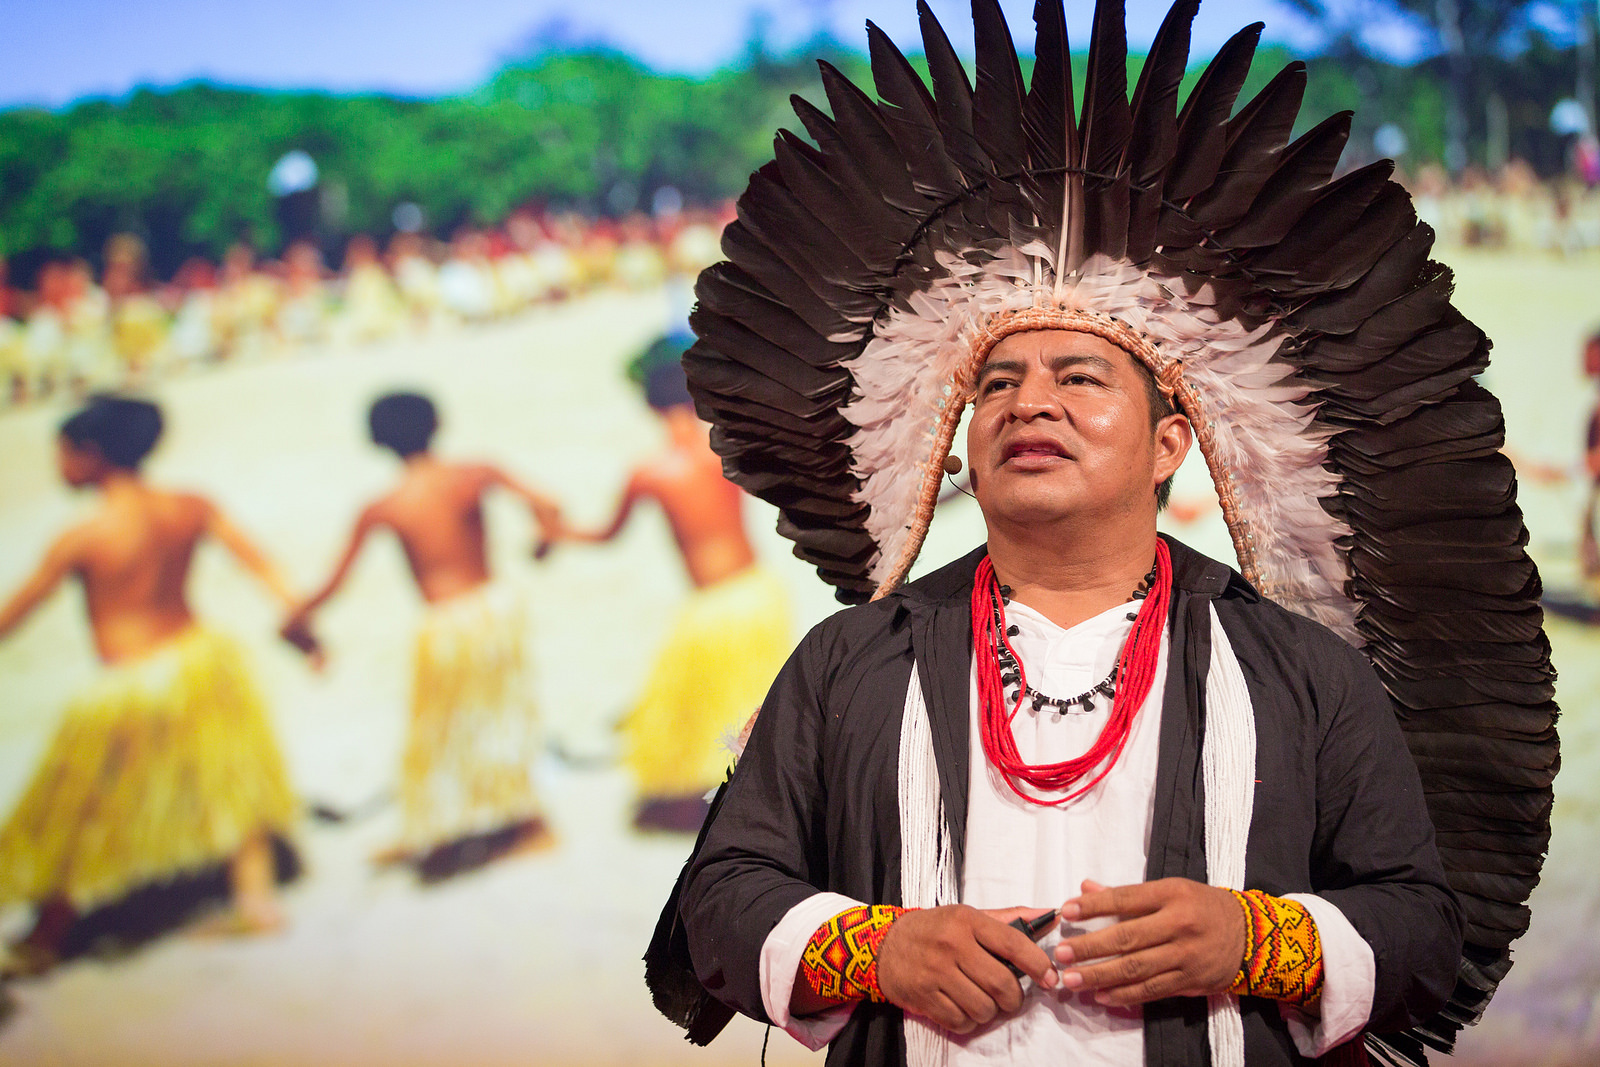 Tashka Yawanawá, chief of the Yawanawá people, spoke in session 1. He started his talk with a chant that's traditional to his people. Photo: James Duncan Davidson